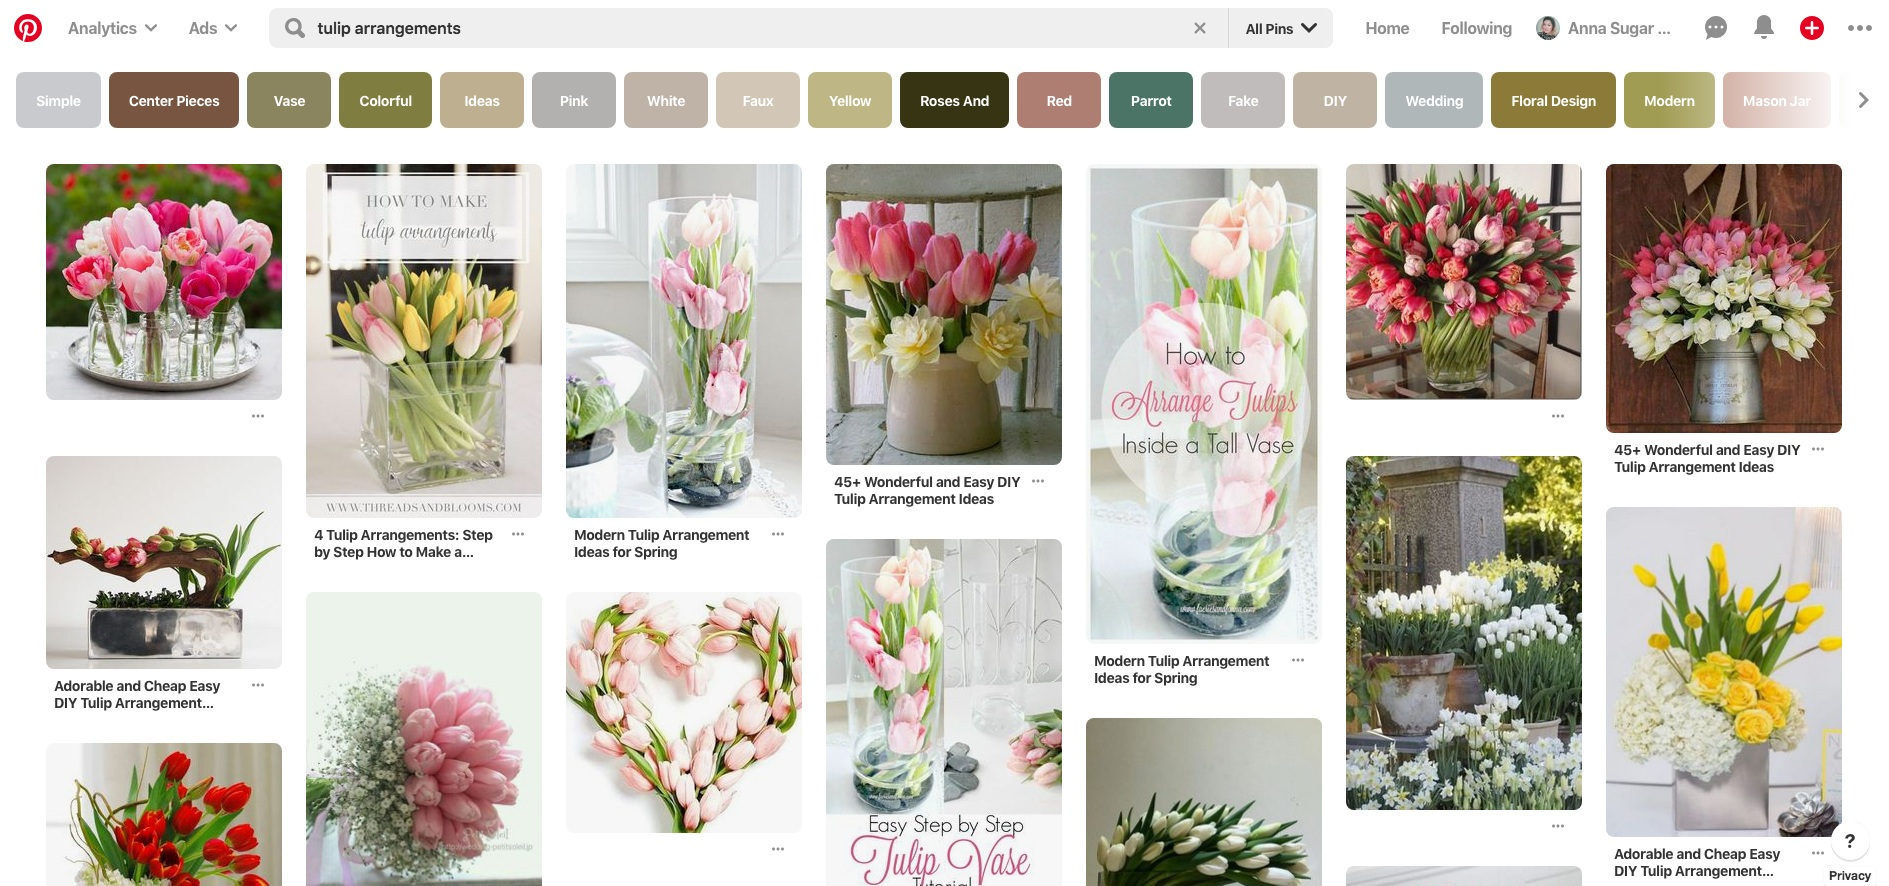 """An example of a search for """"tulip arrangements"""" on Pinterest."""